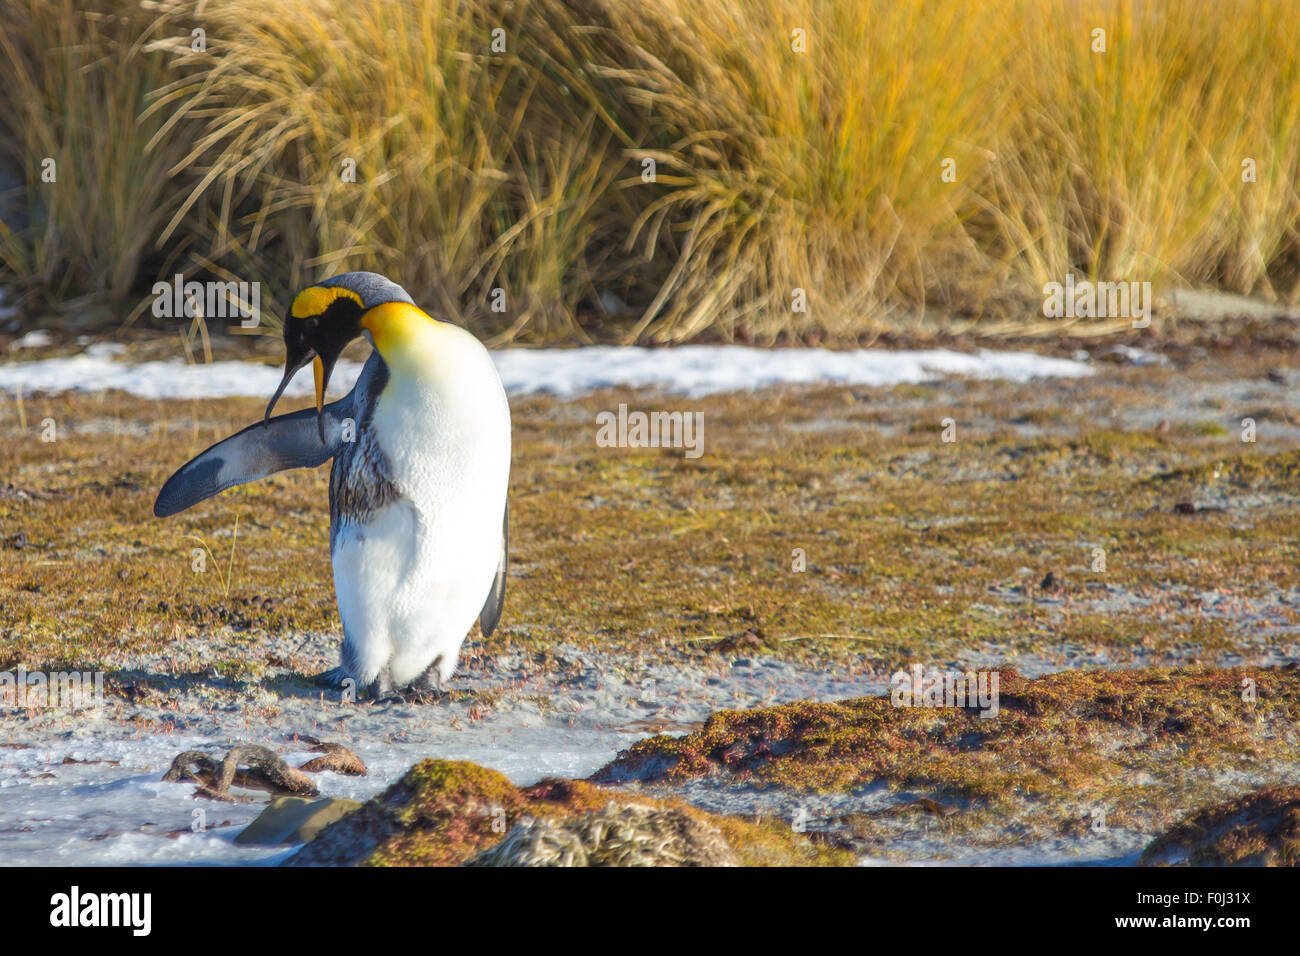 King Penguin polluted with oil trying to preen. Falkland Islands. - Stock Image